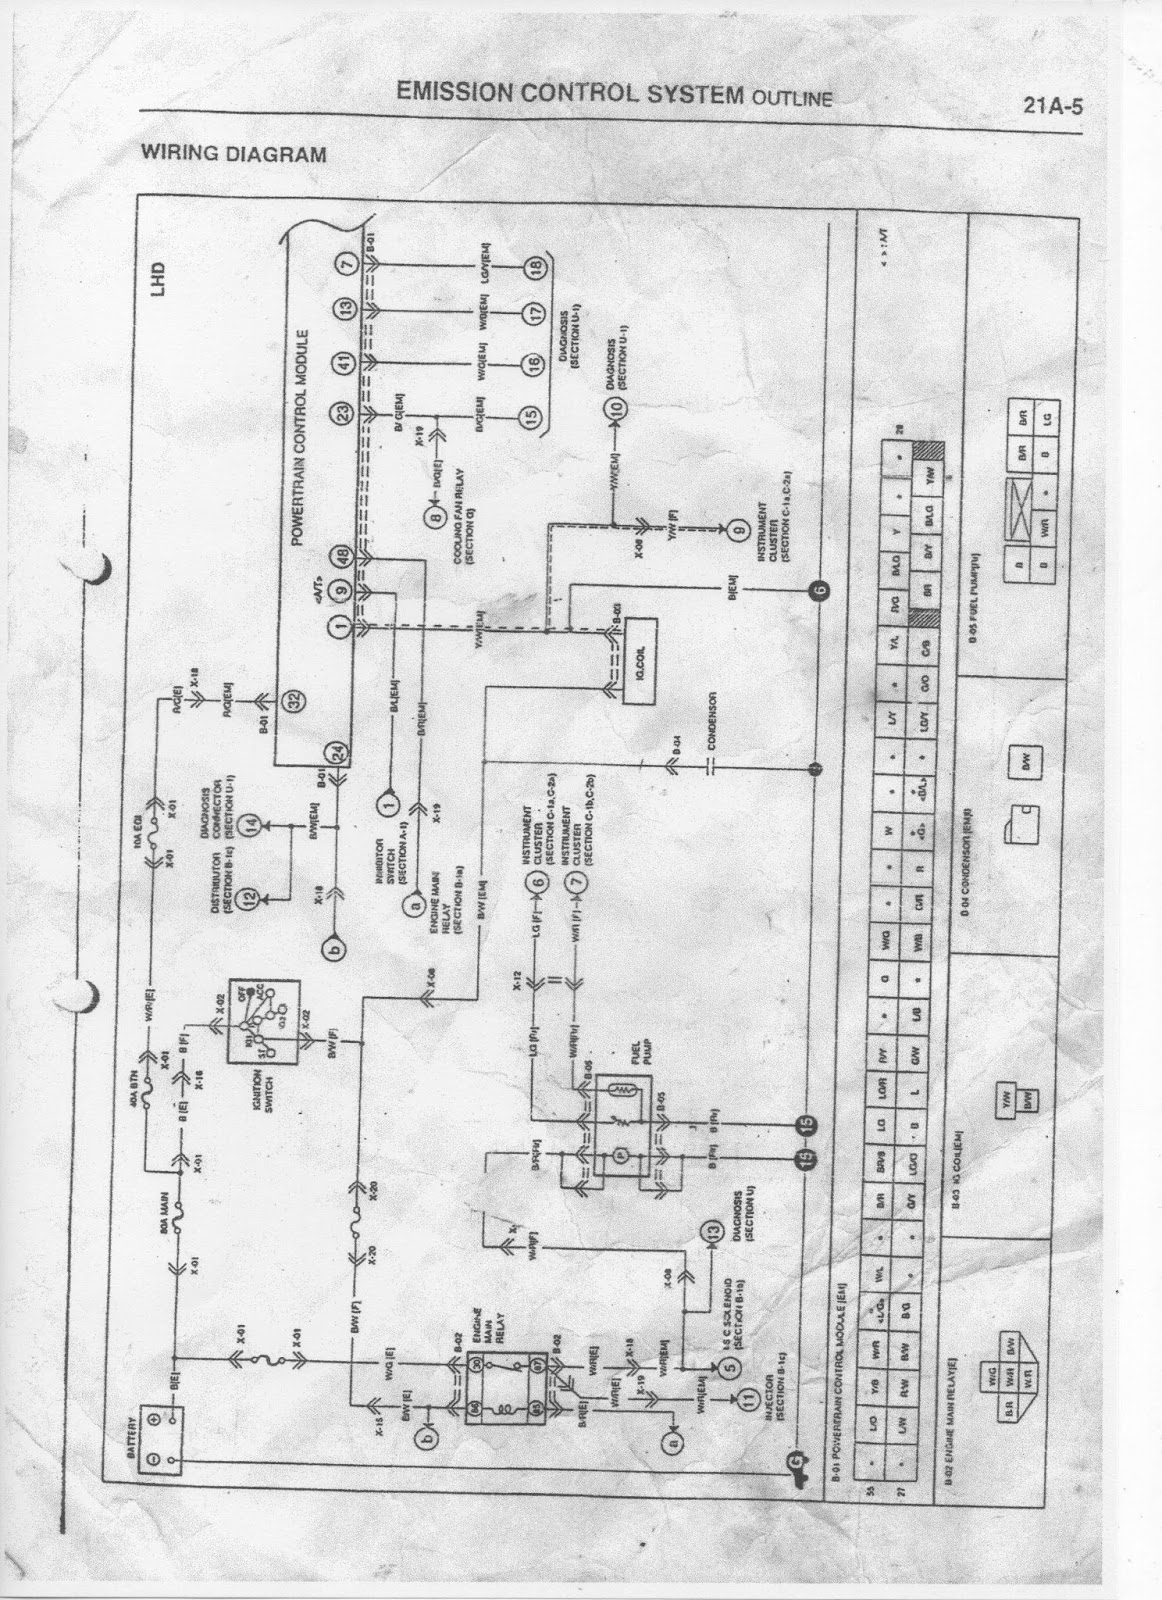 mini truck wiring diagram wiring diagram expert hijet mini truck wiring diagrams [ 1162 x 1600 Pixel ]